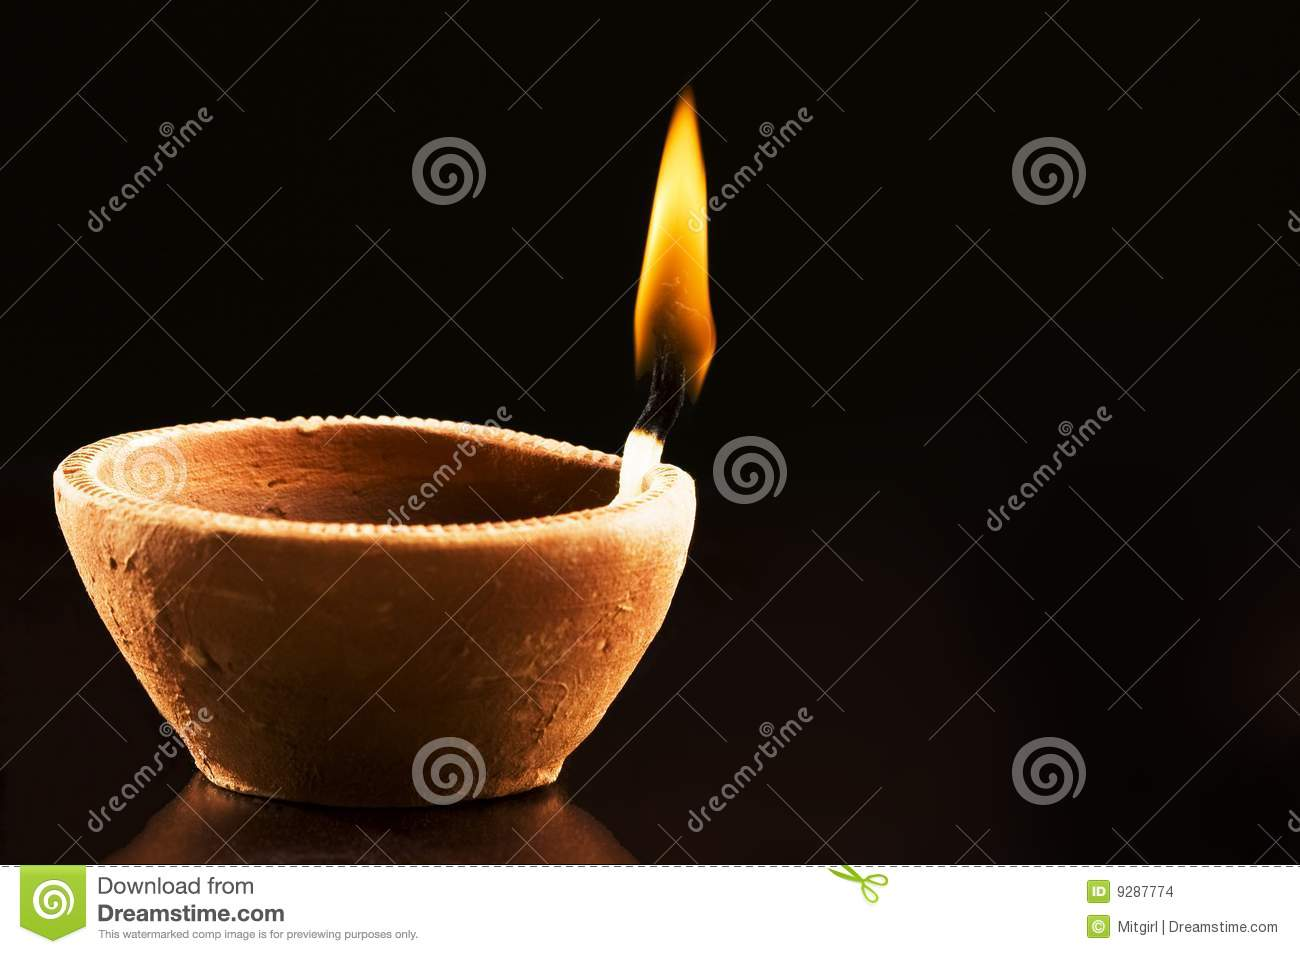 Earthen Lamp Diwali Burning Flame In Earthen Lamp Stock Images Image 9287774